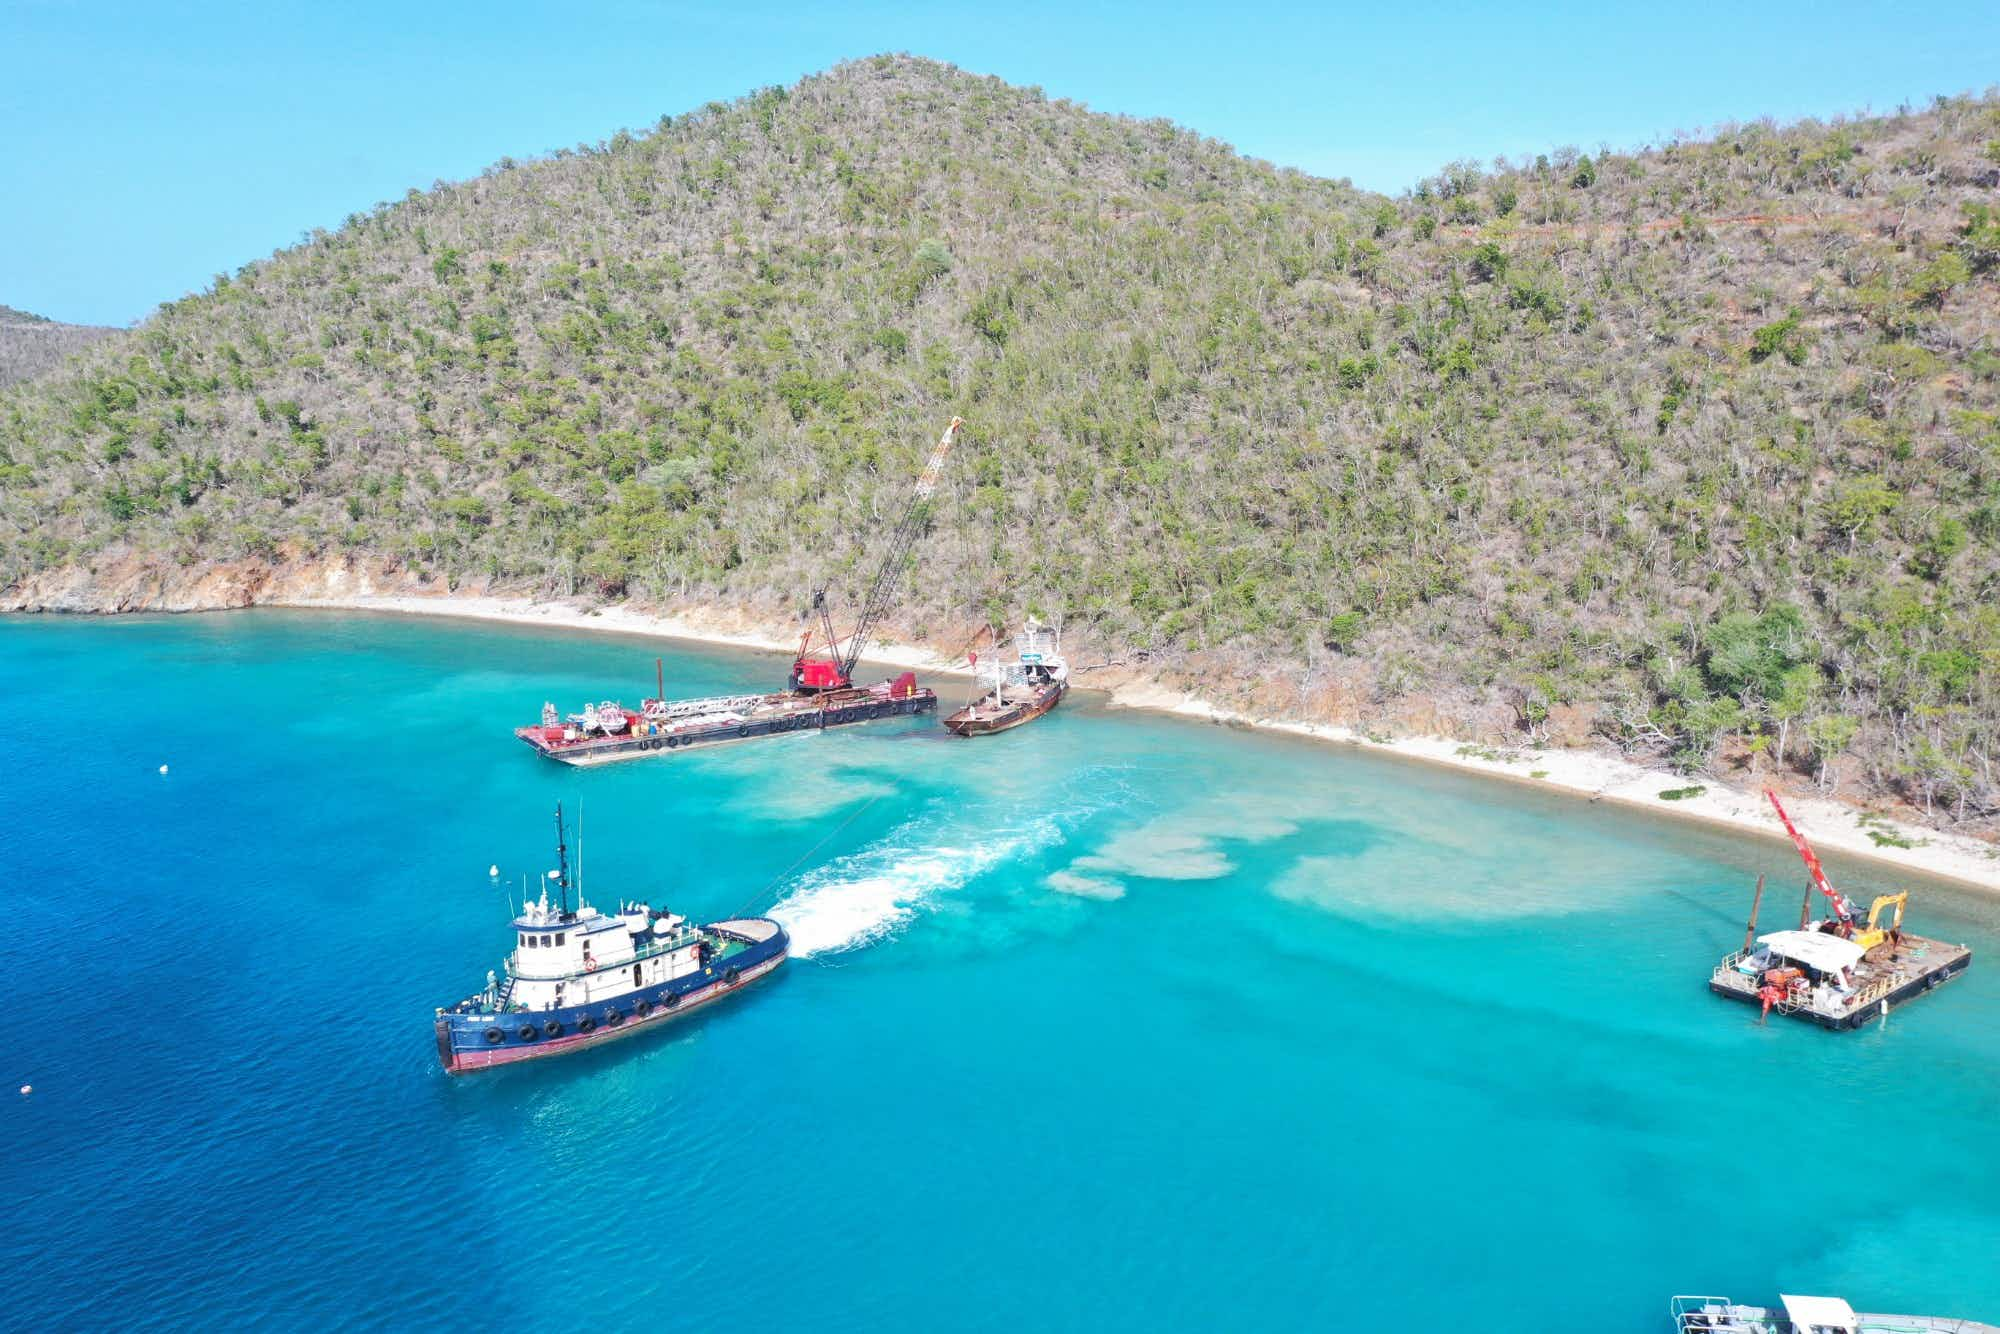 Planes are being sunk to create an artificial reef system for divers in the British Virgin Islands